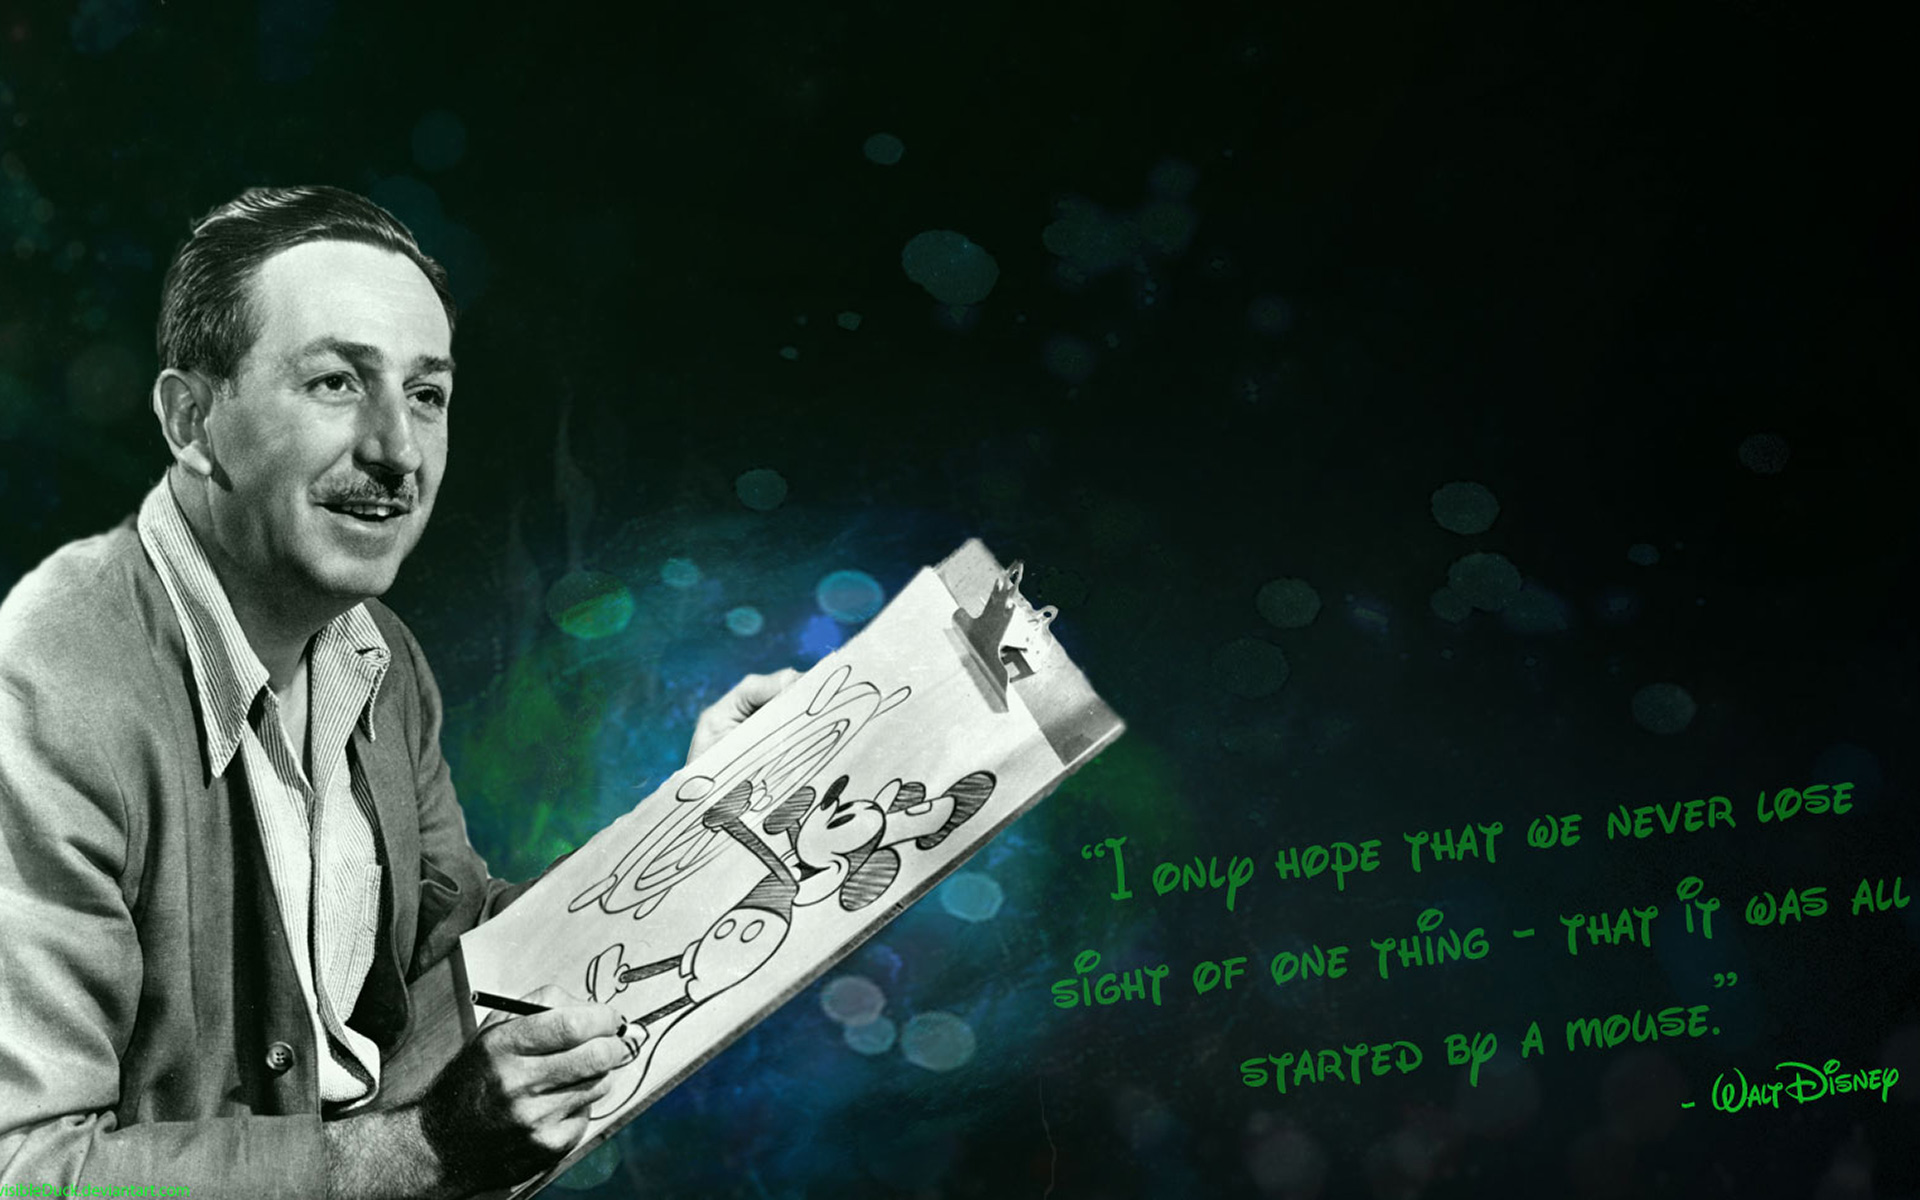 Cartoons Wallpapers   Mickey Mouse   Walt Disney 1920x1200 wallpaper 1920x1200